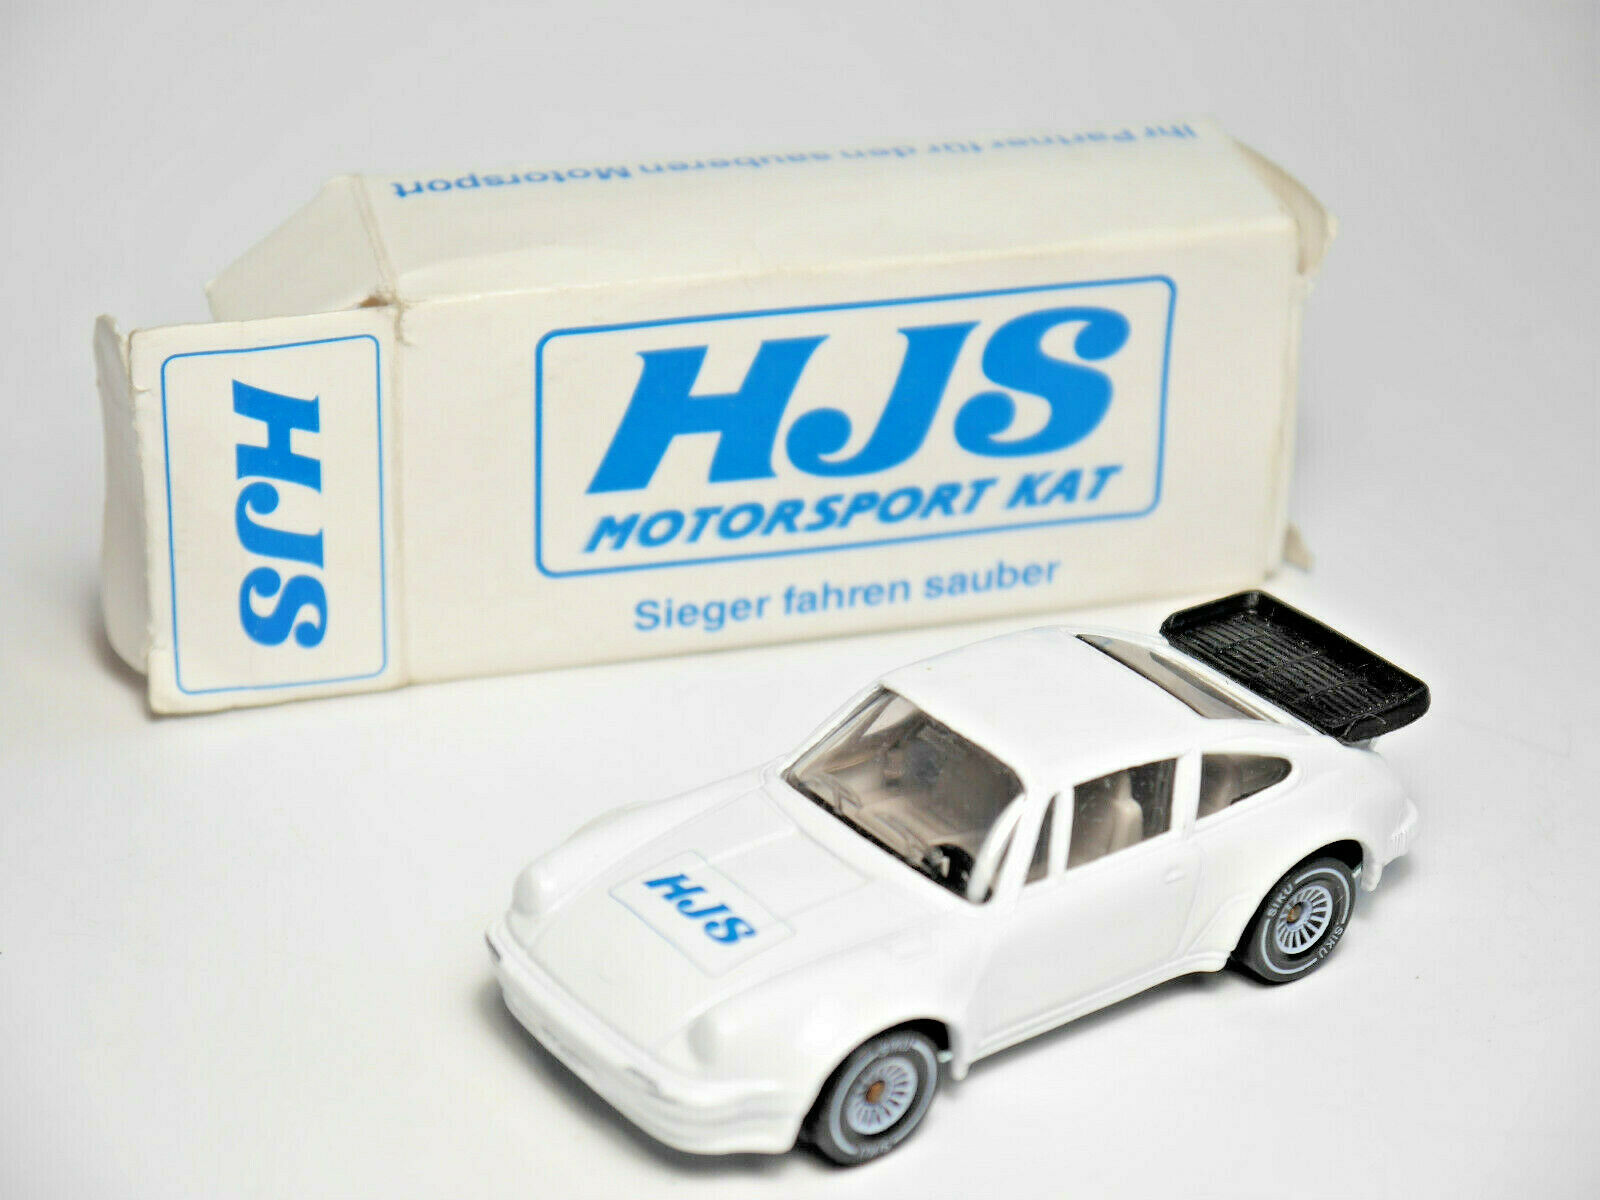 Porsche 911 (930) Turbo Werbemodell HJS MOTORSPORT KAT, Siku 1059 1 55 nm BOXED